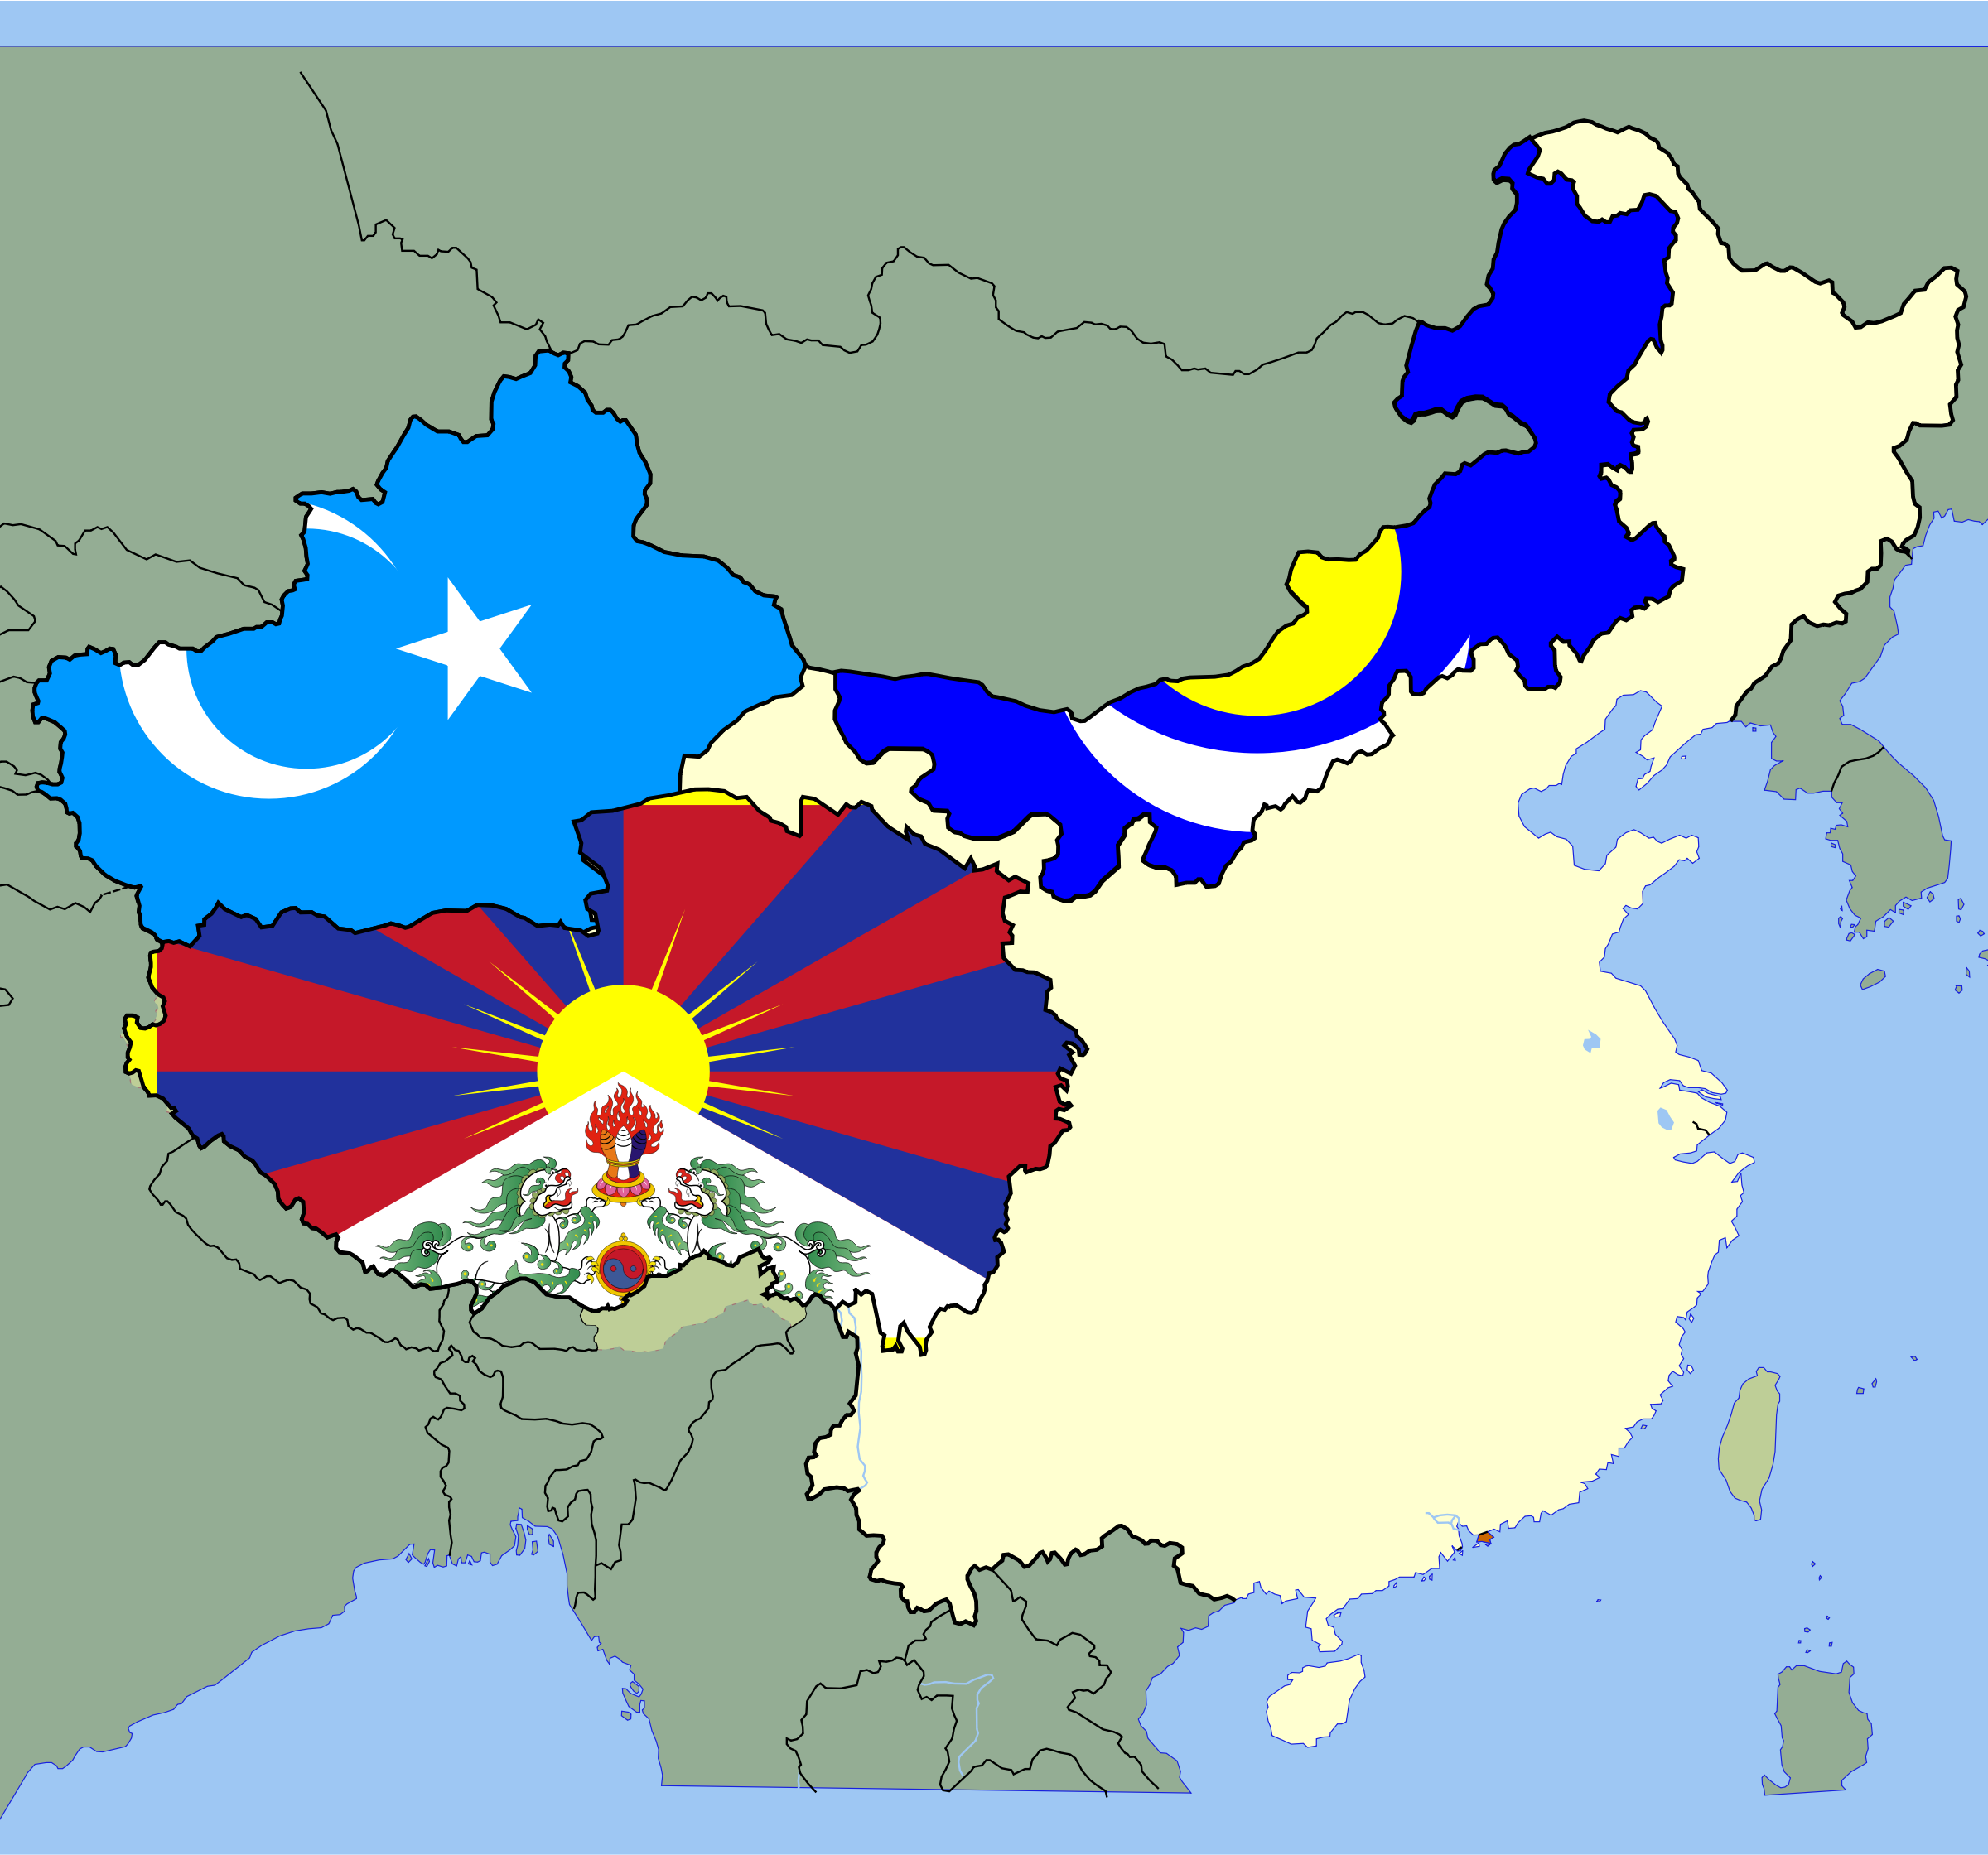 China separatism by Clon